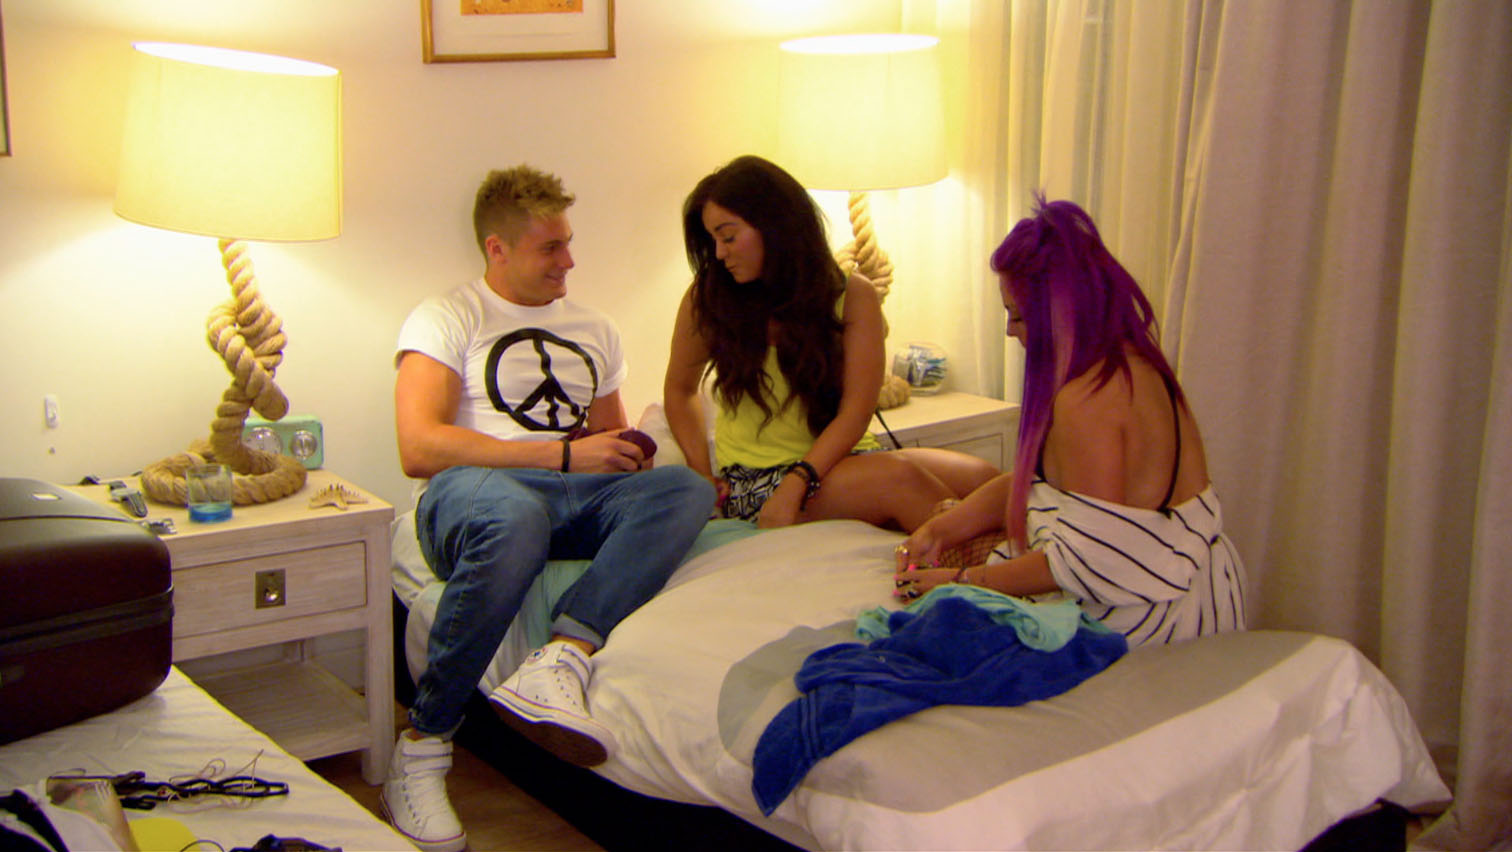 Holly Hagan and Vicky Pattison slap a sex ban on Scotty T in Geordie Shore: Going Down Under